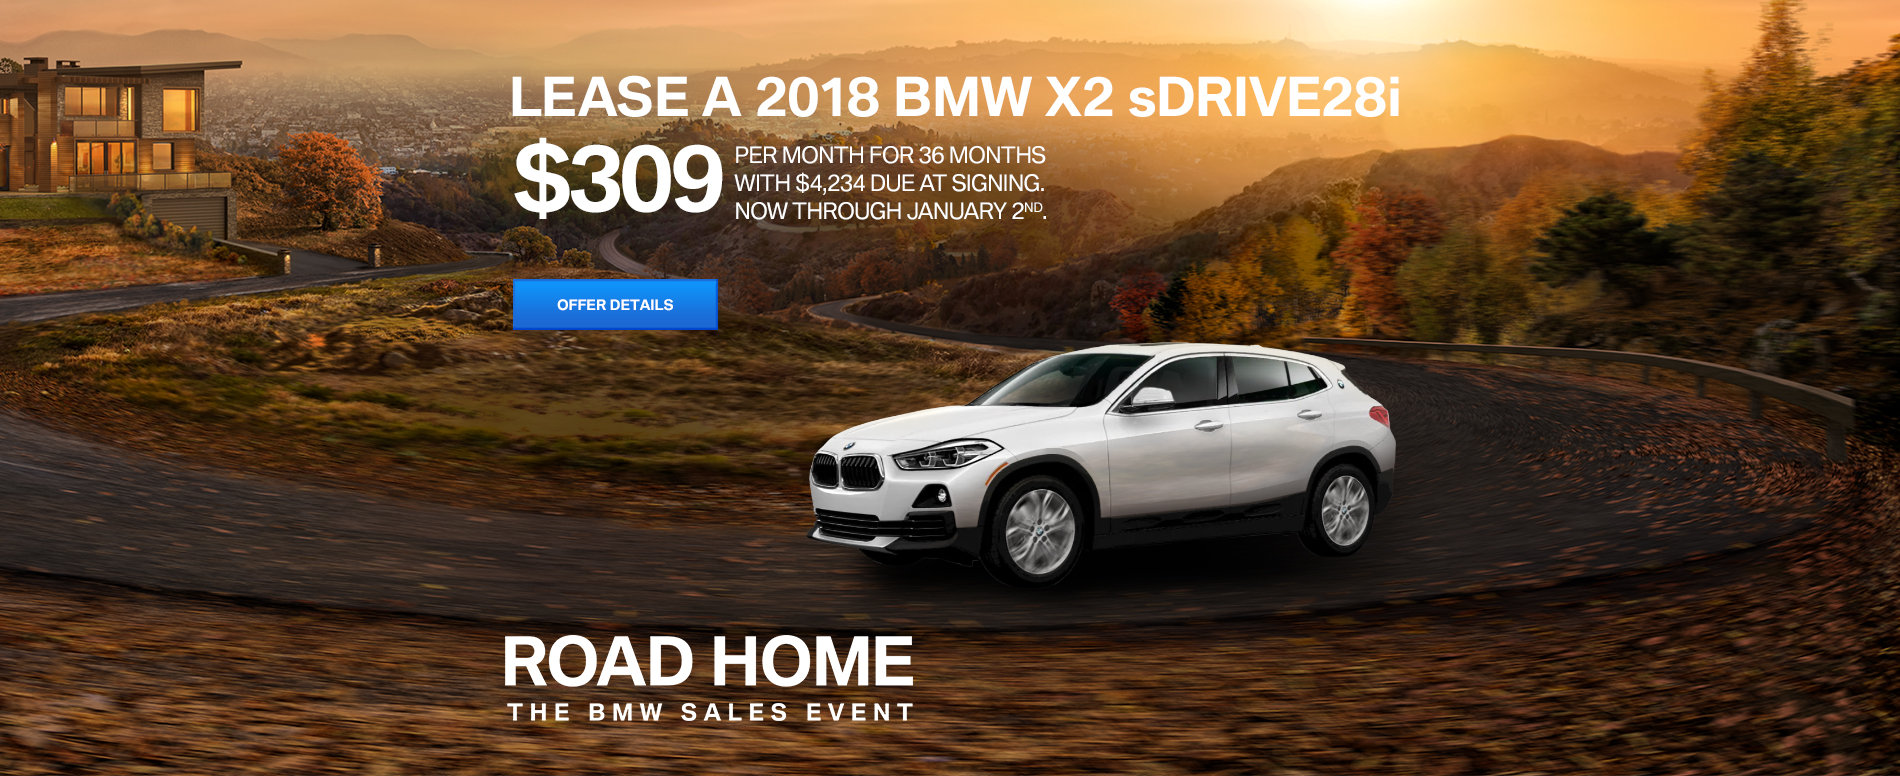 LEASE A 2018 BMW X2 sDRIVE28i FOR $309/MONTH FOR 36 MONTHS  WITH